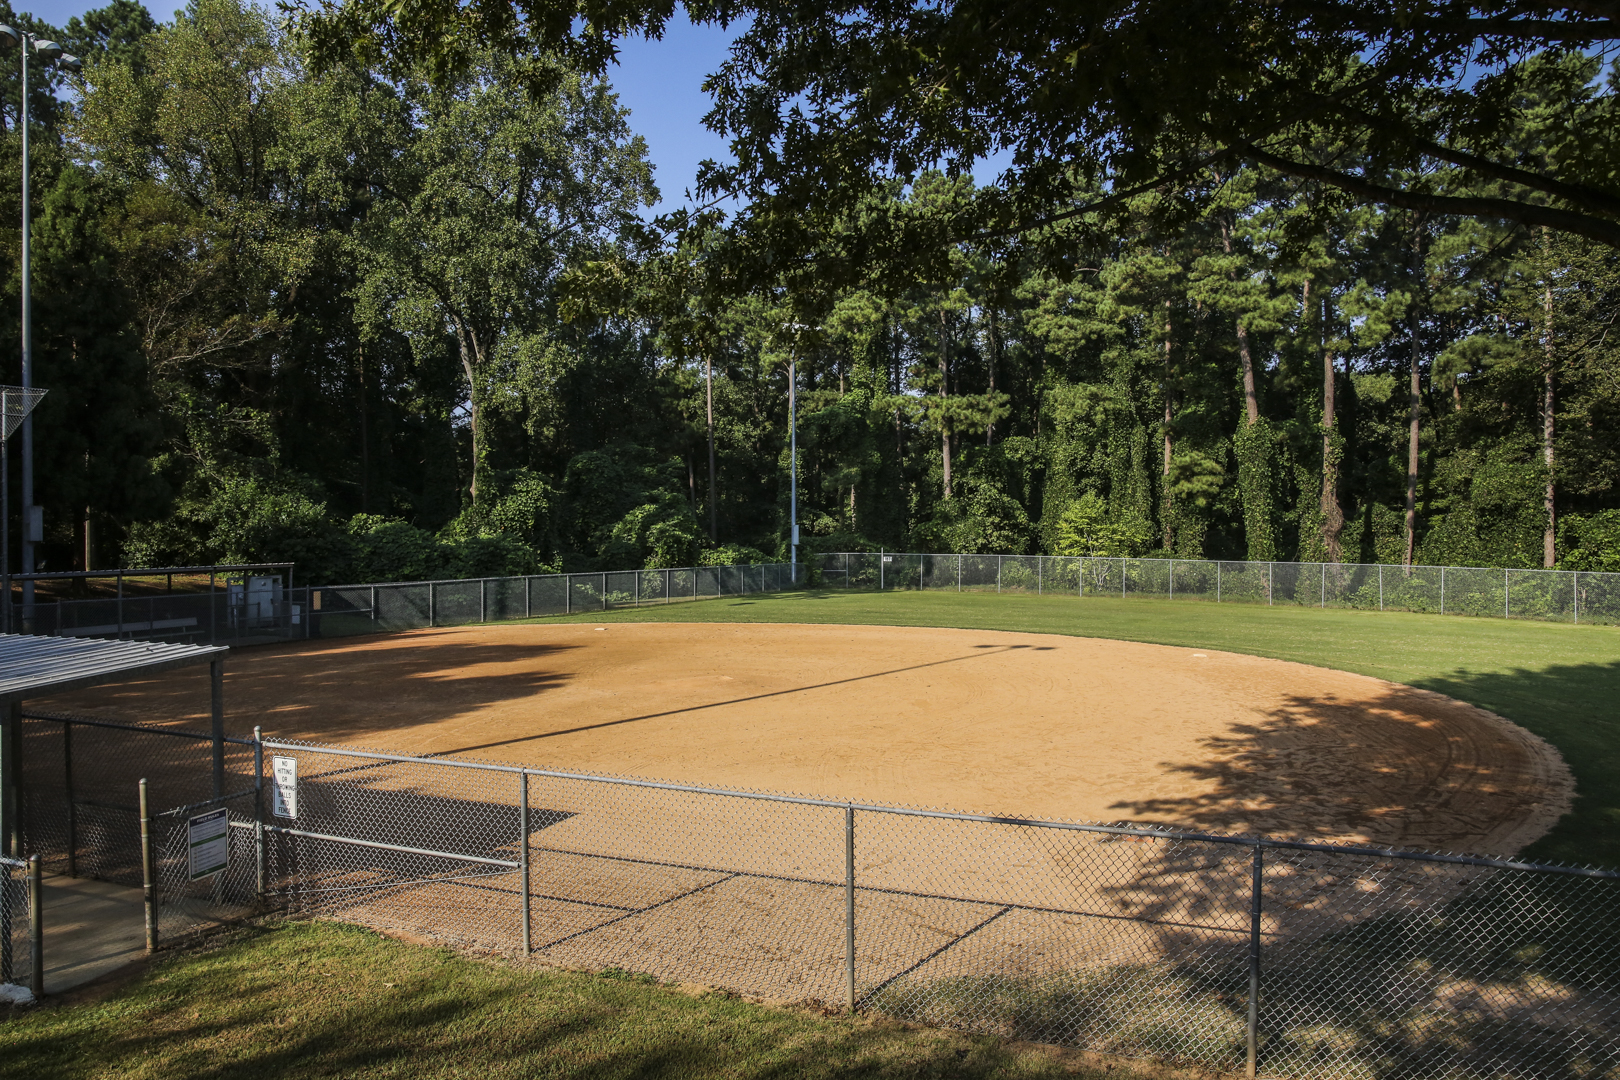 A third smaller field used for youth baseball